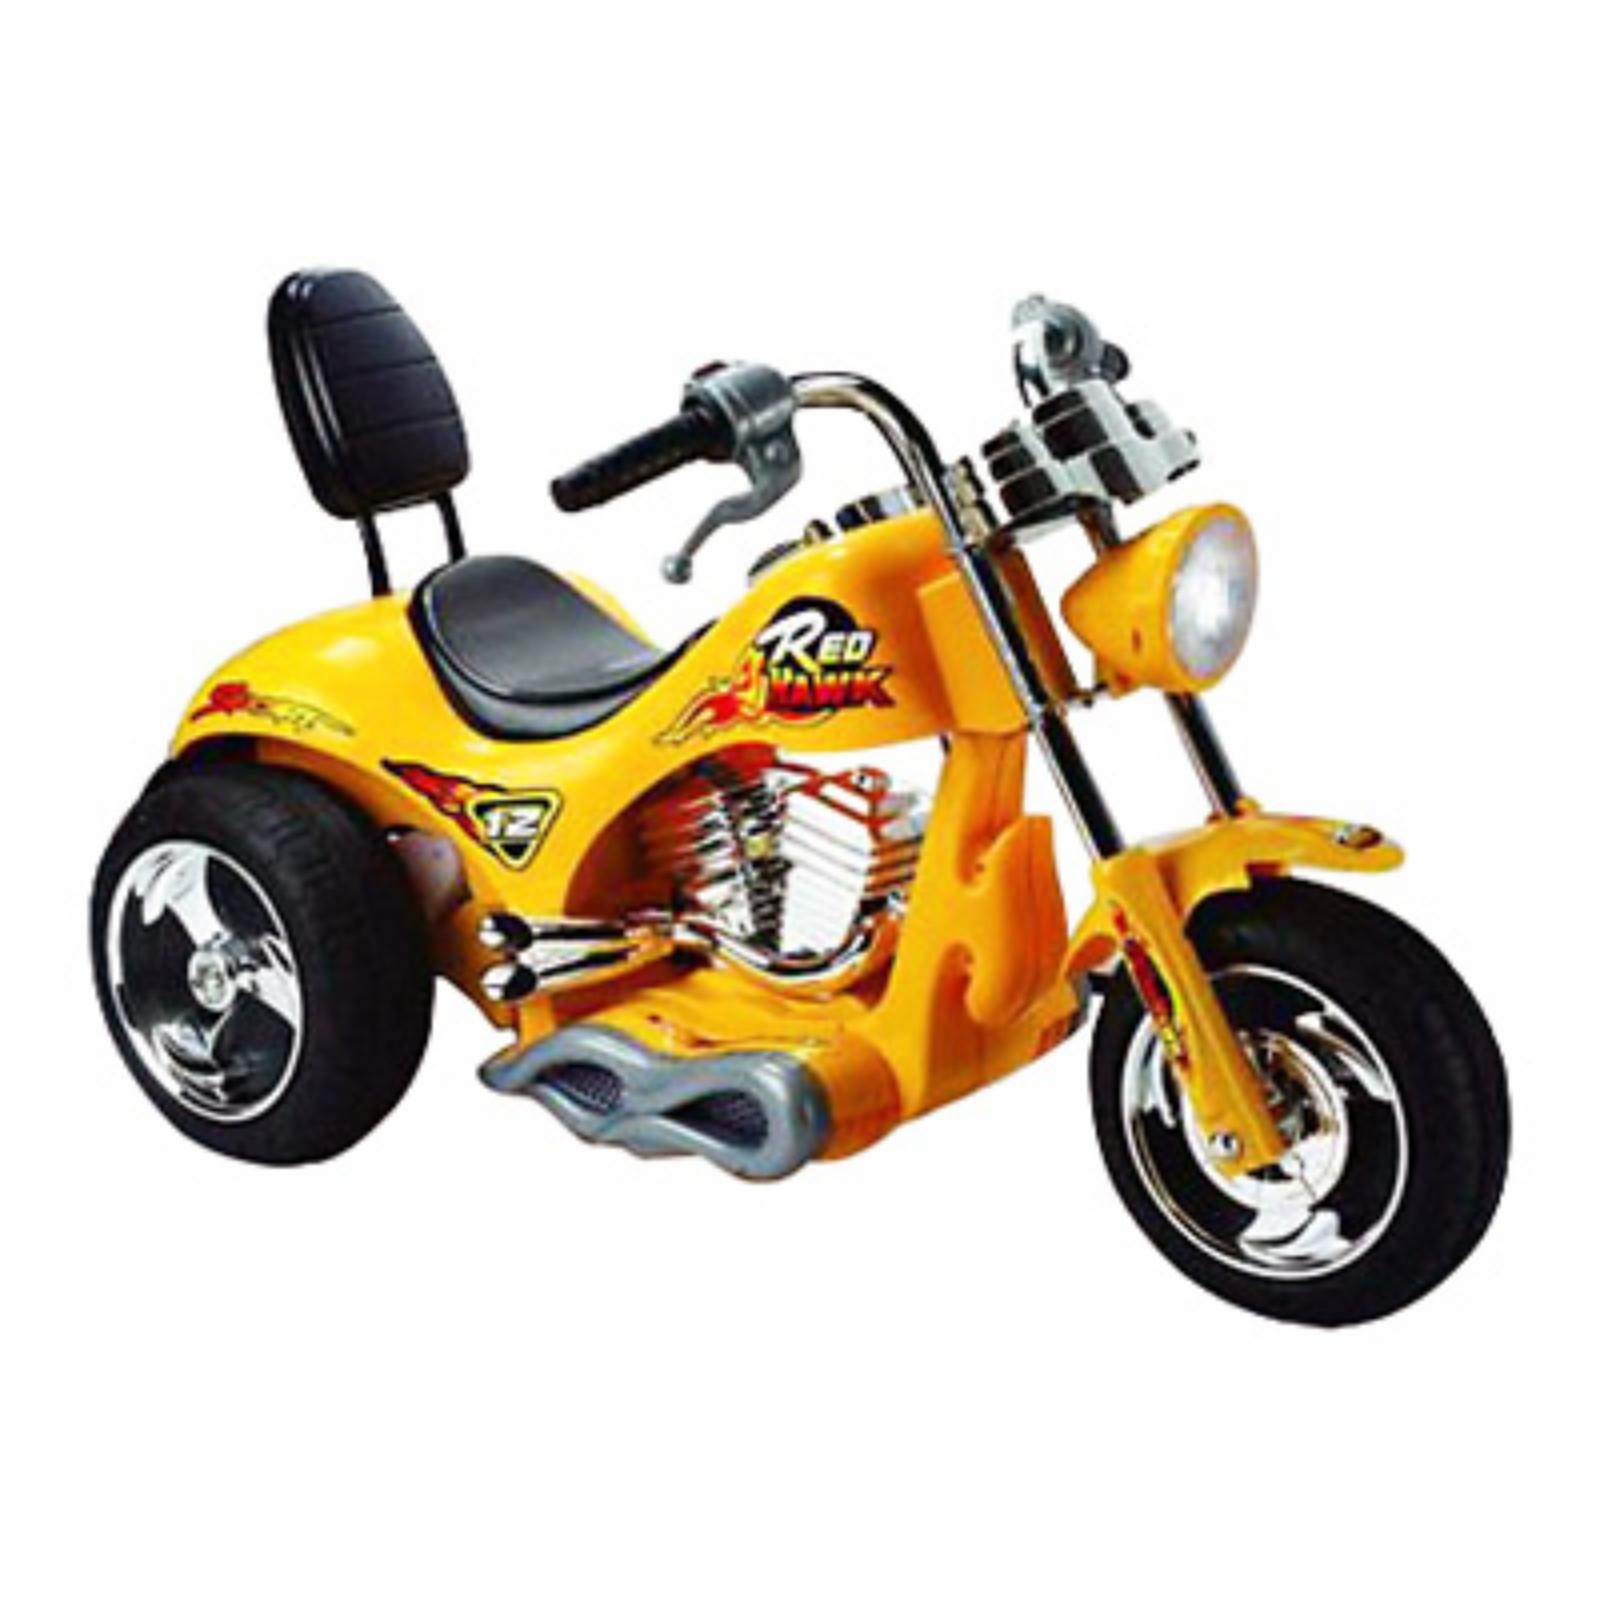 Mini Motos Red Hawk Motorcycle Battery Powered Riding Toy...